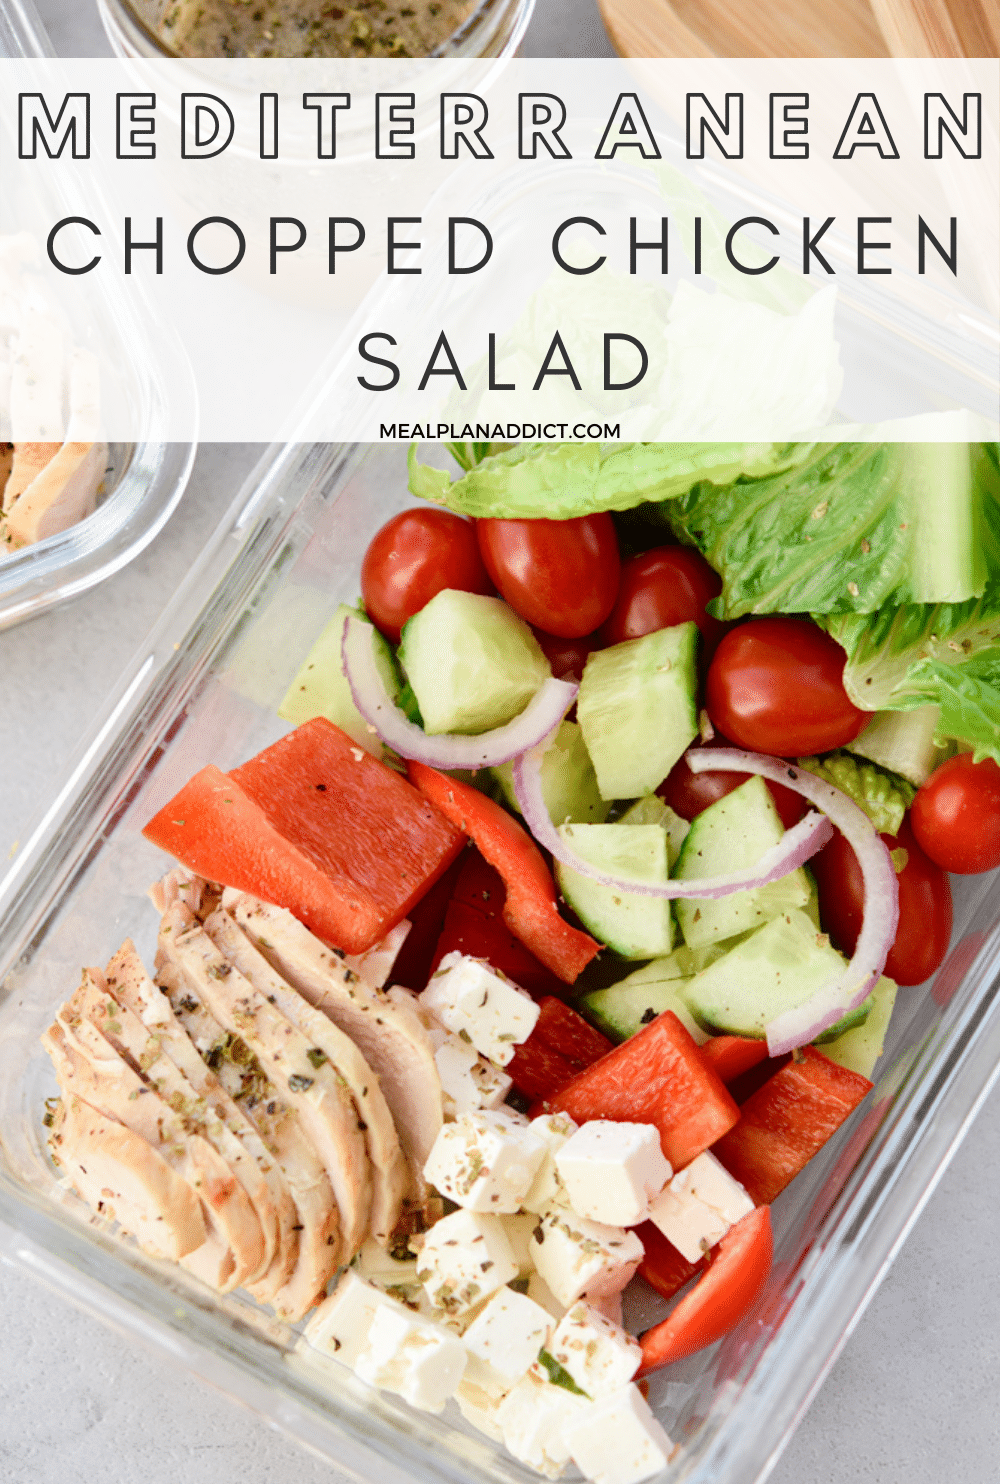 Chopped chicken salad pin for Pinterest